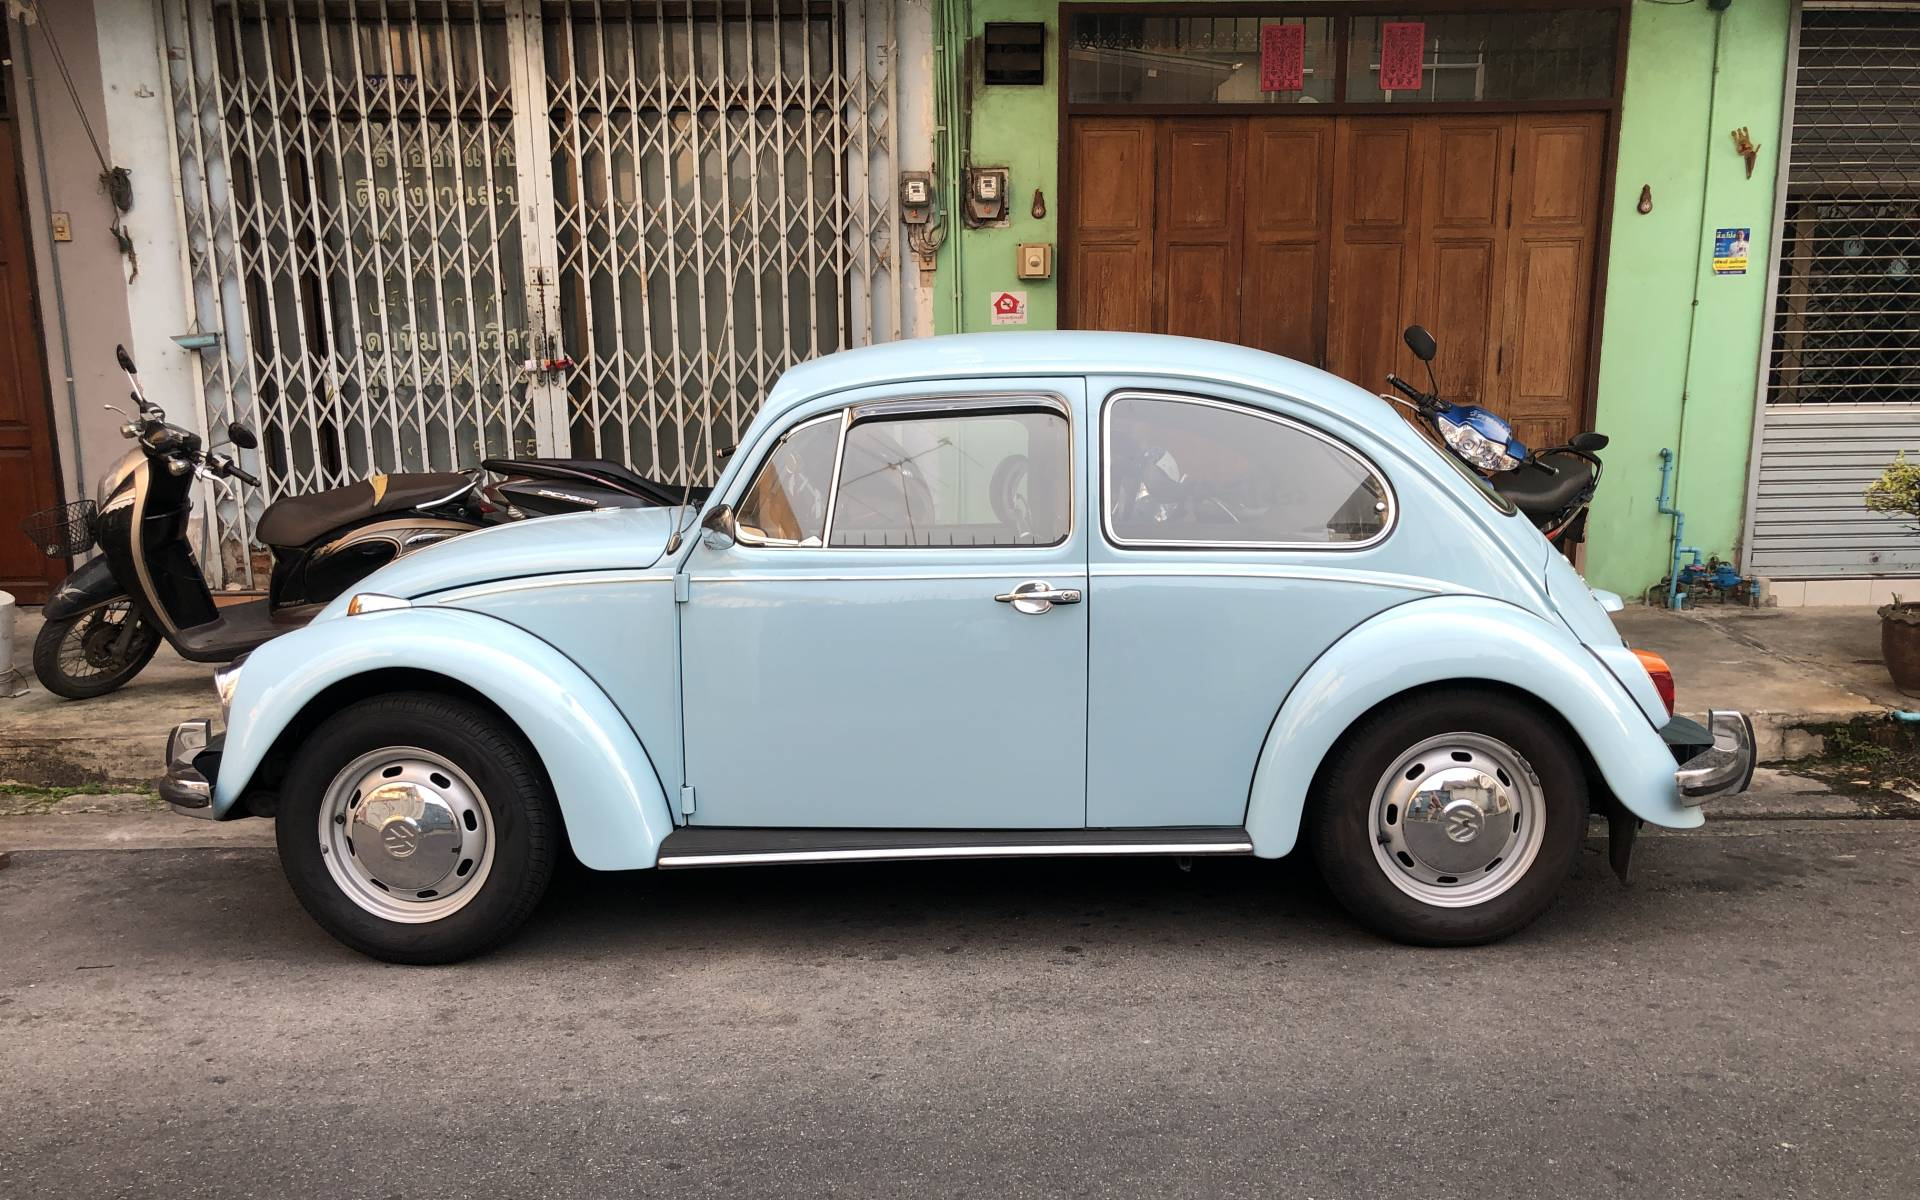 <p><strong>Volkswagen Beetle</strong></p>